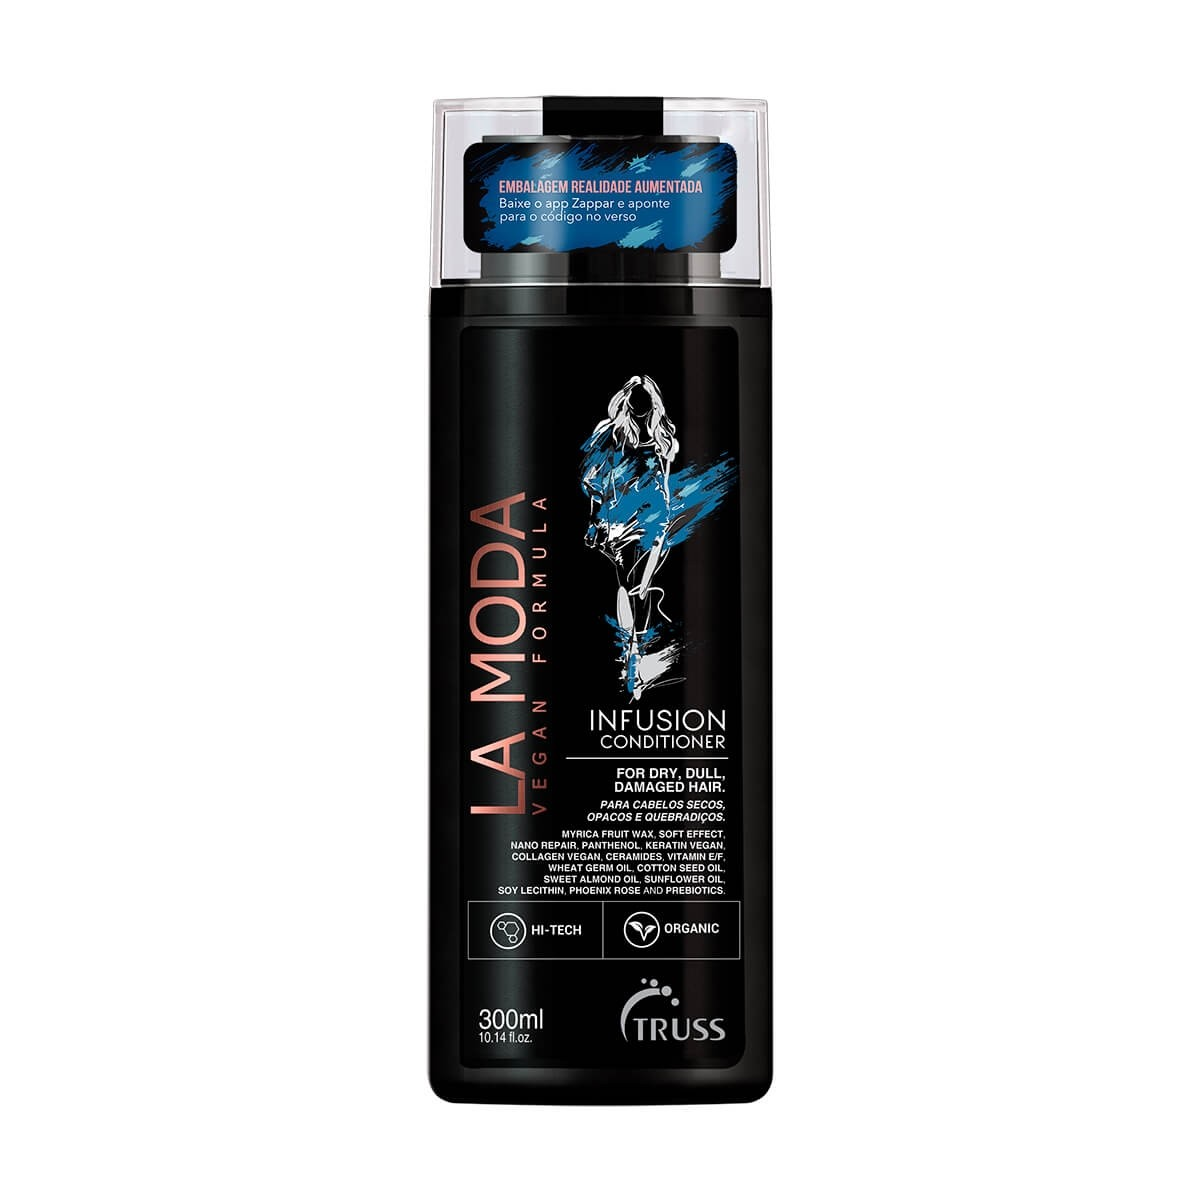 Condicionador Infusion LA MODA Truss 300ml